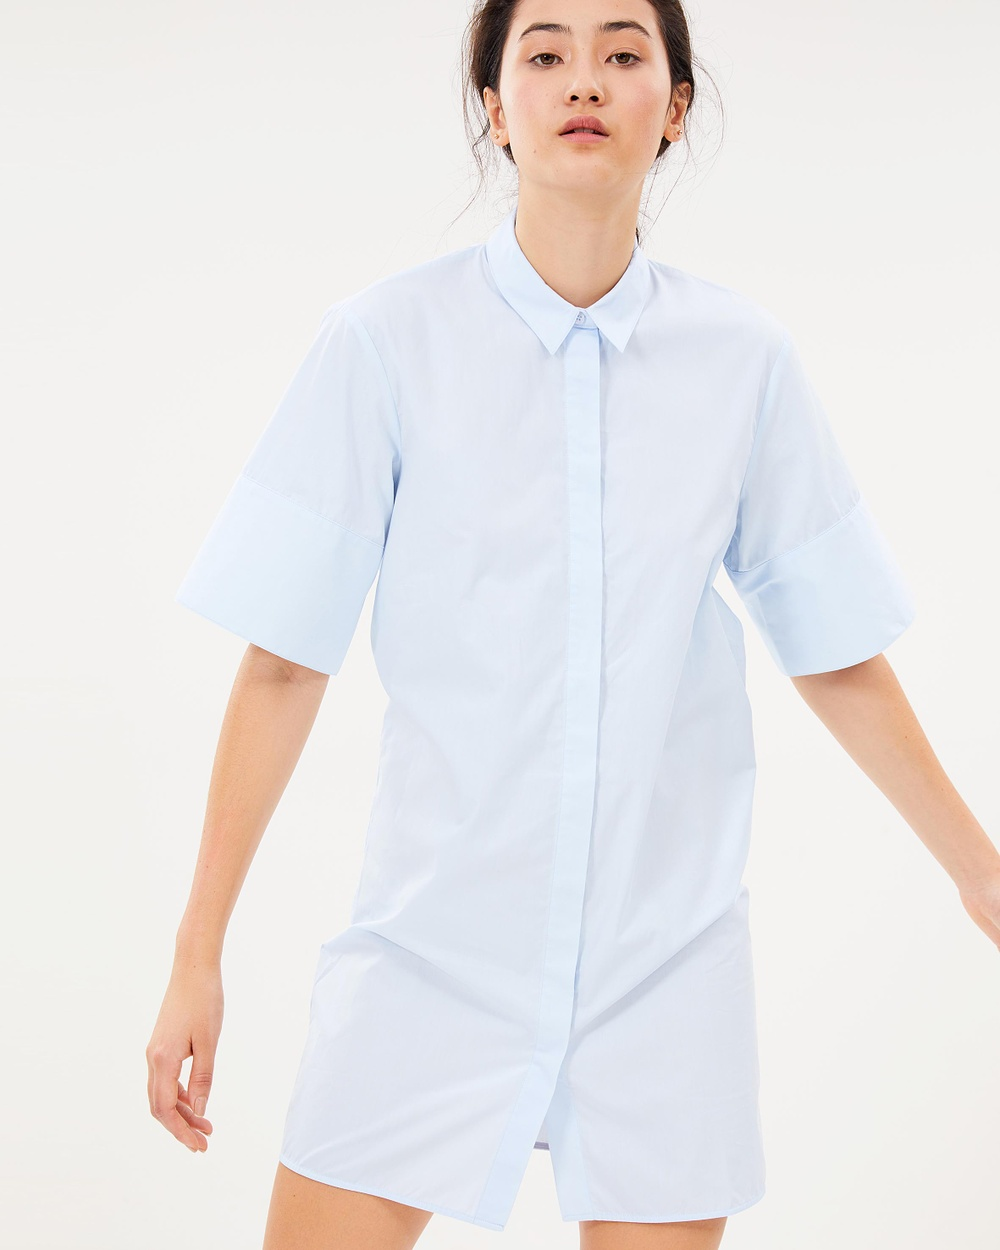 House of Dagmar Caddie Shirt Tops Light Blue Caddie Shirt